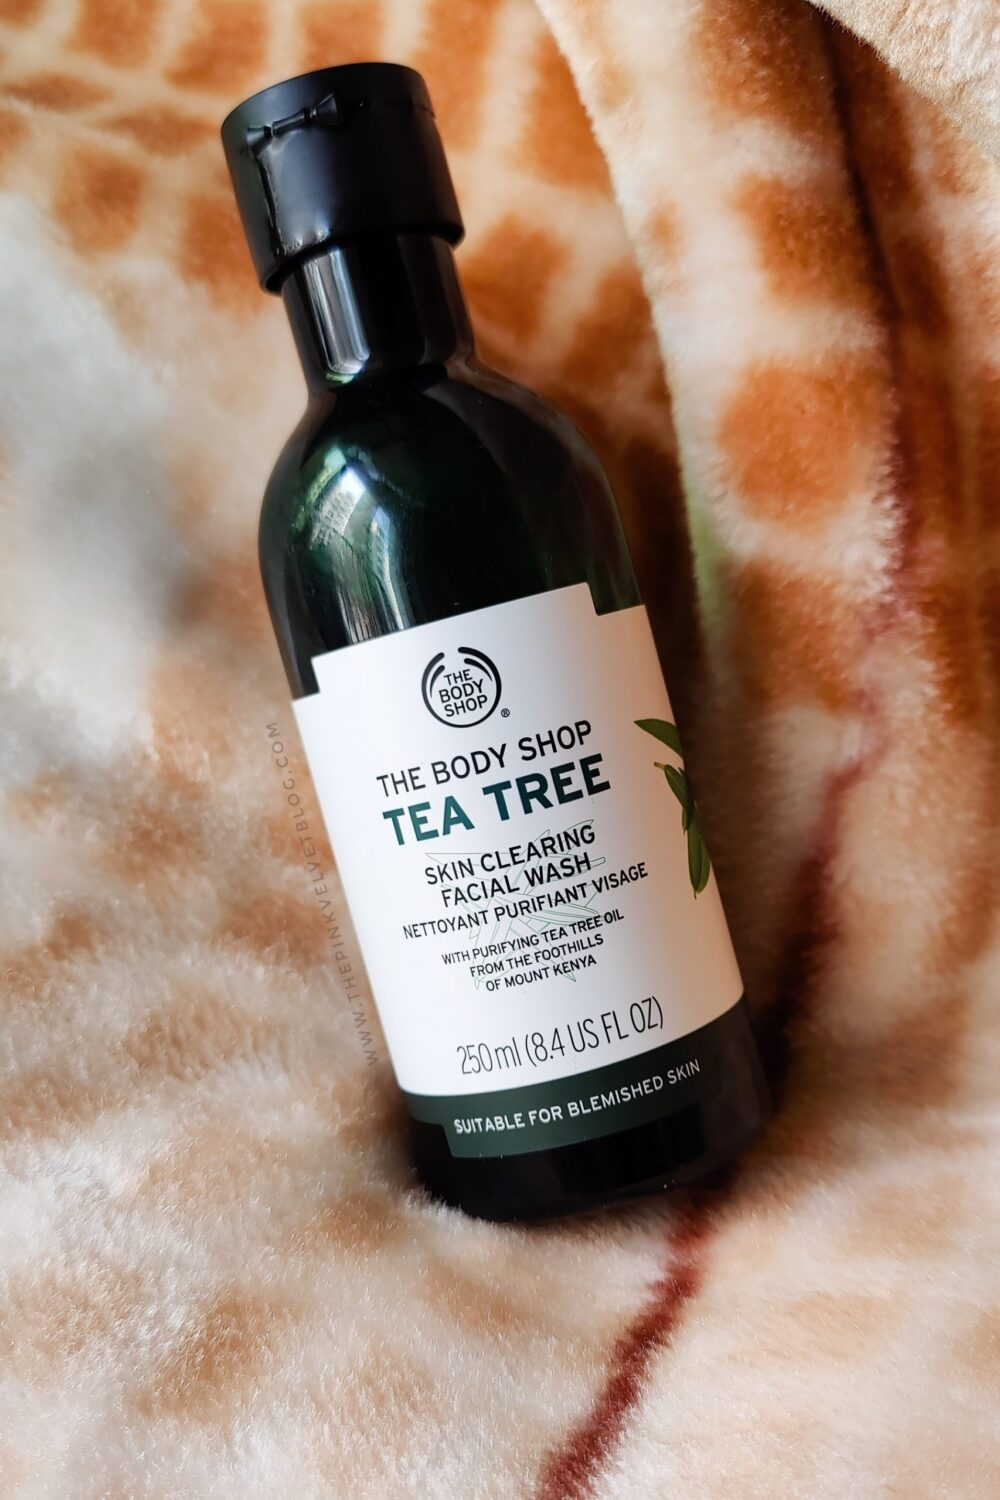 The Body Shop Tea Tree Face Wash Review